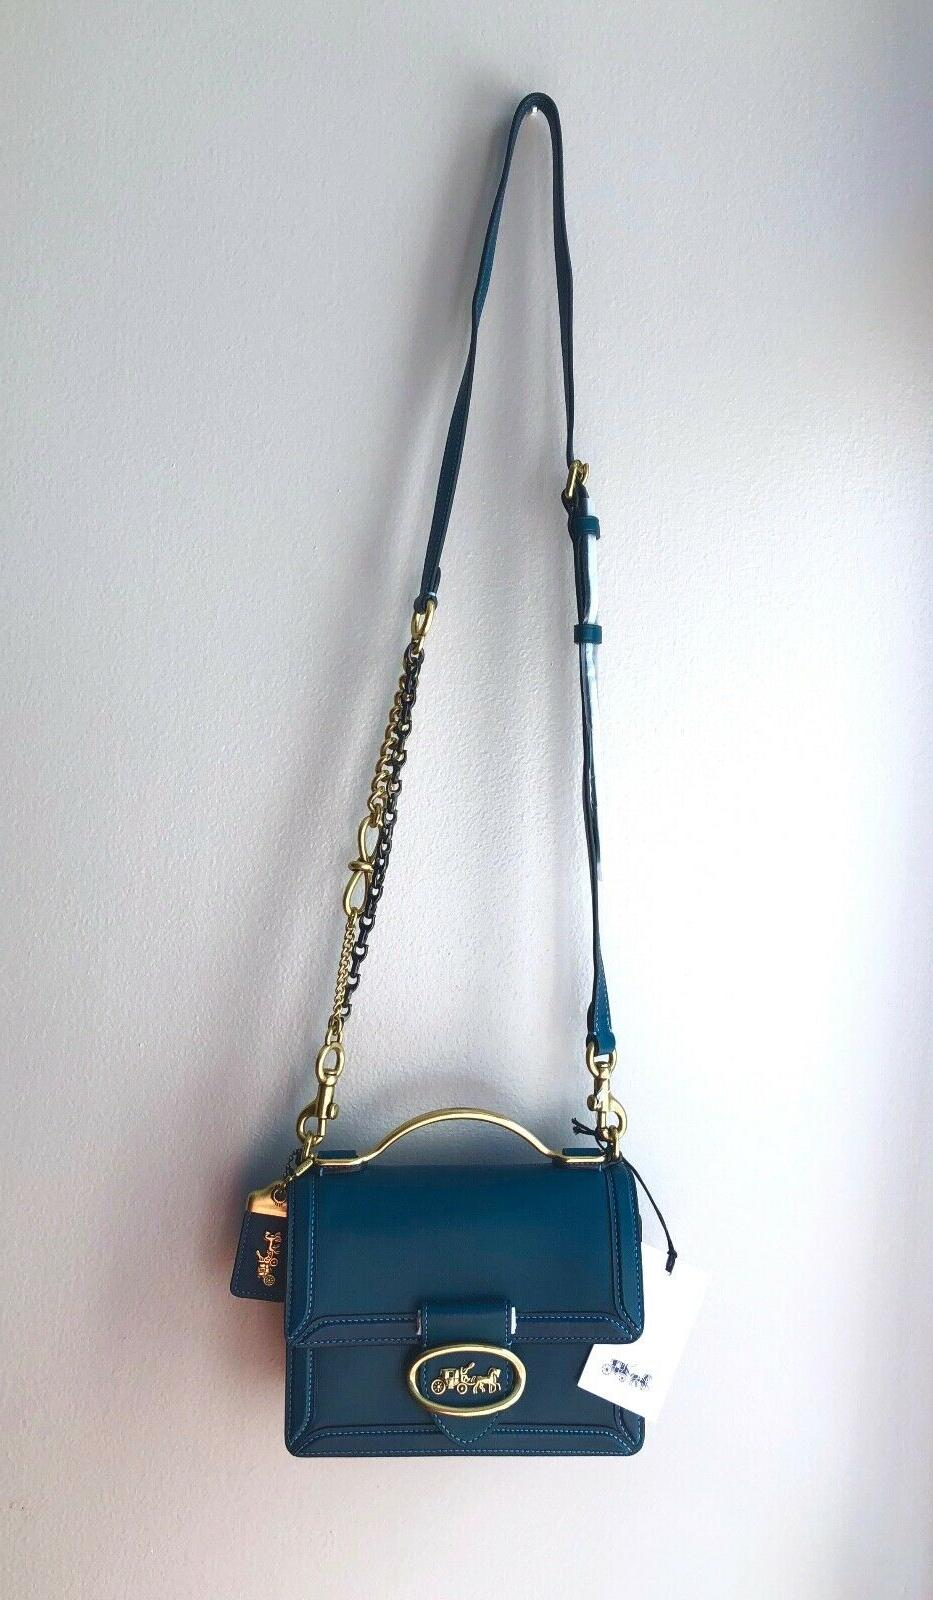 Sold Out NWT Coach 1941 Leather 18 Handle Crossbody Bag